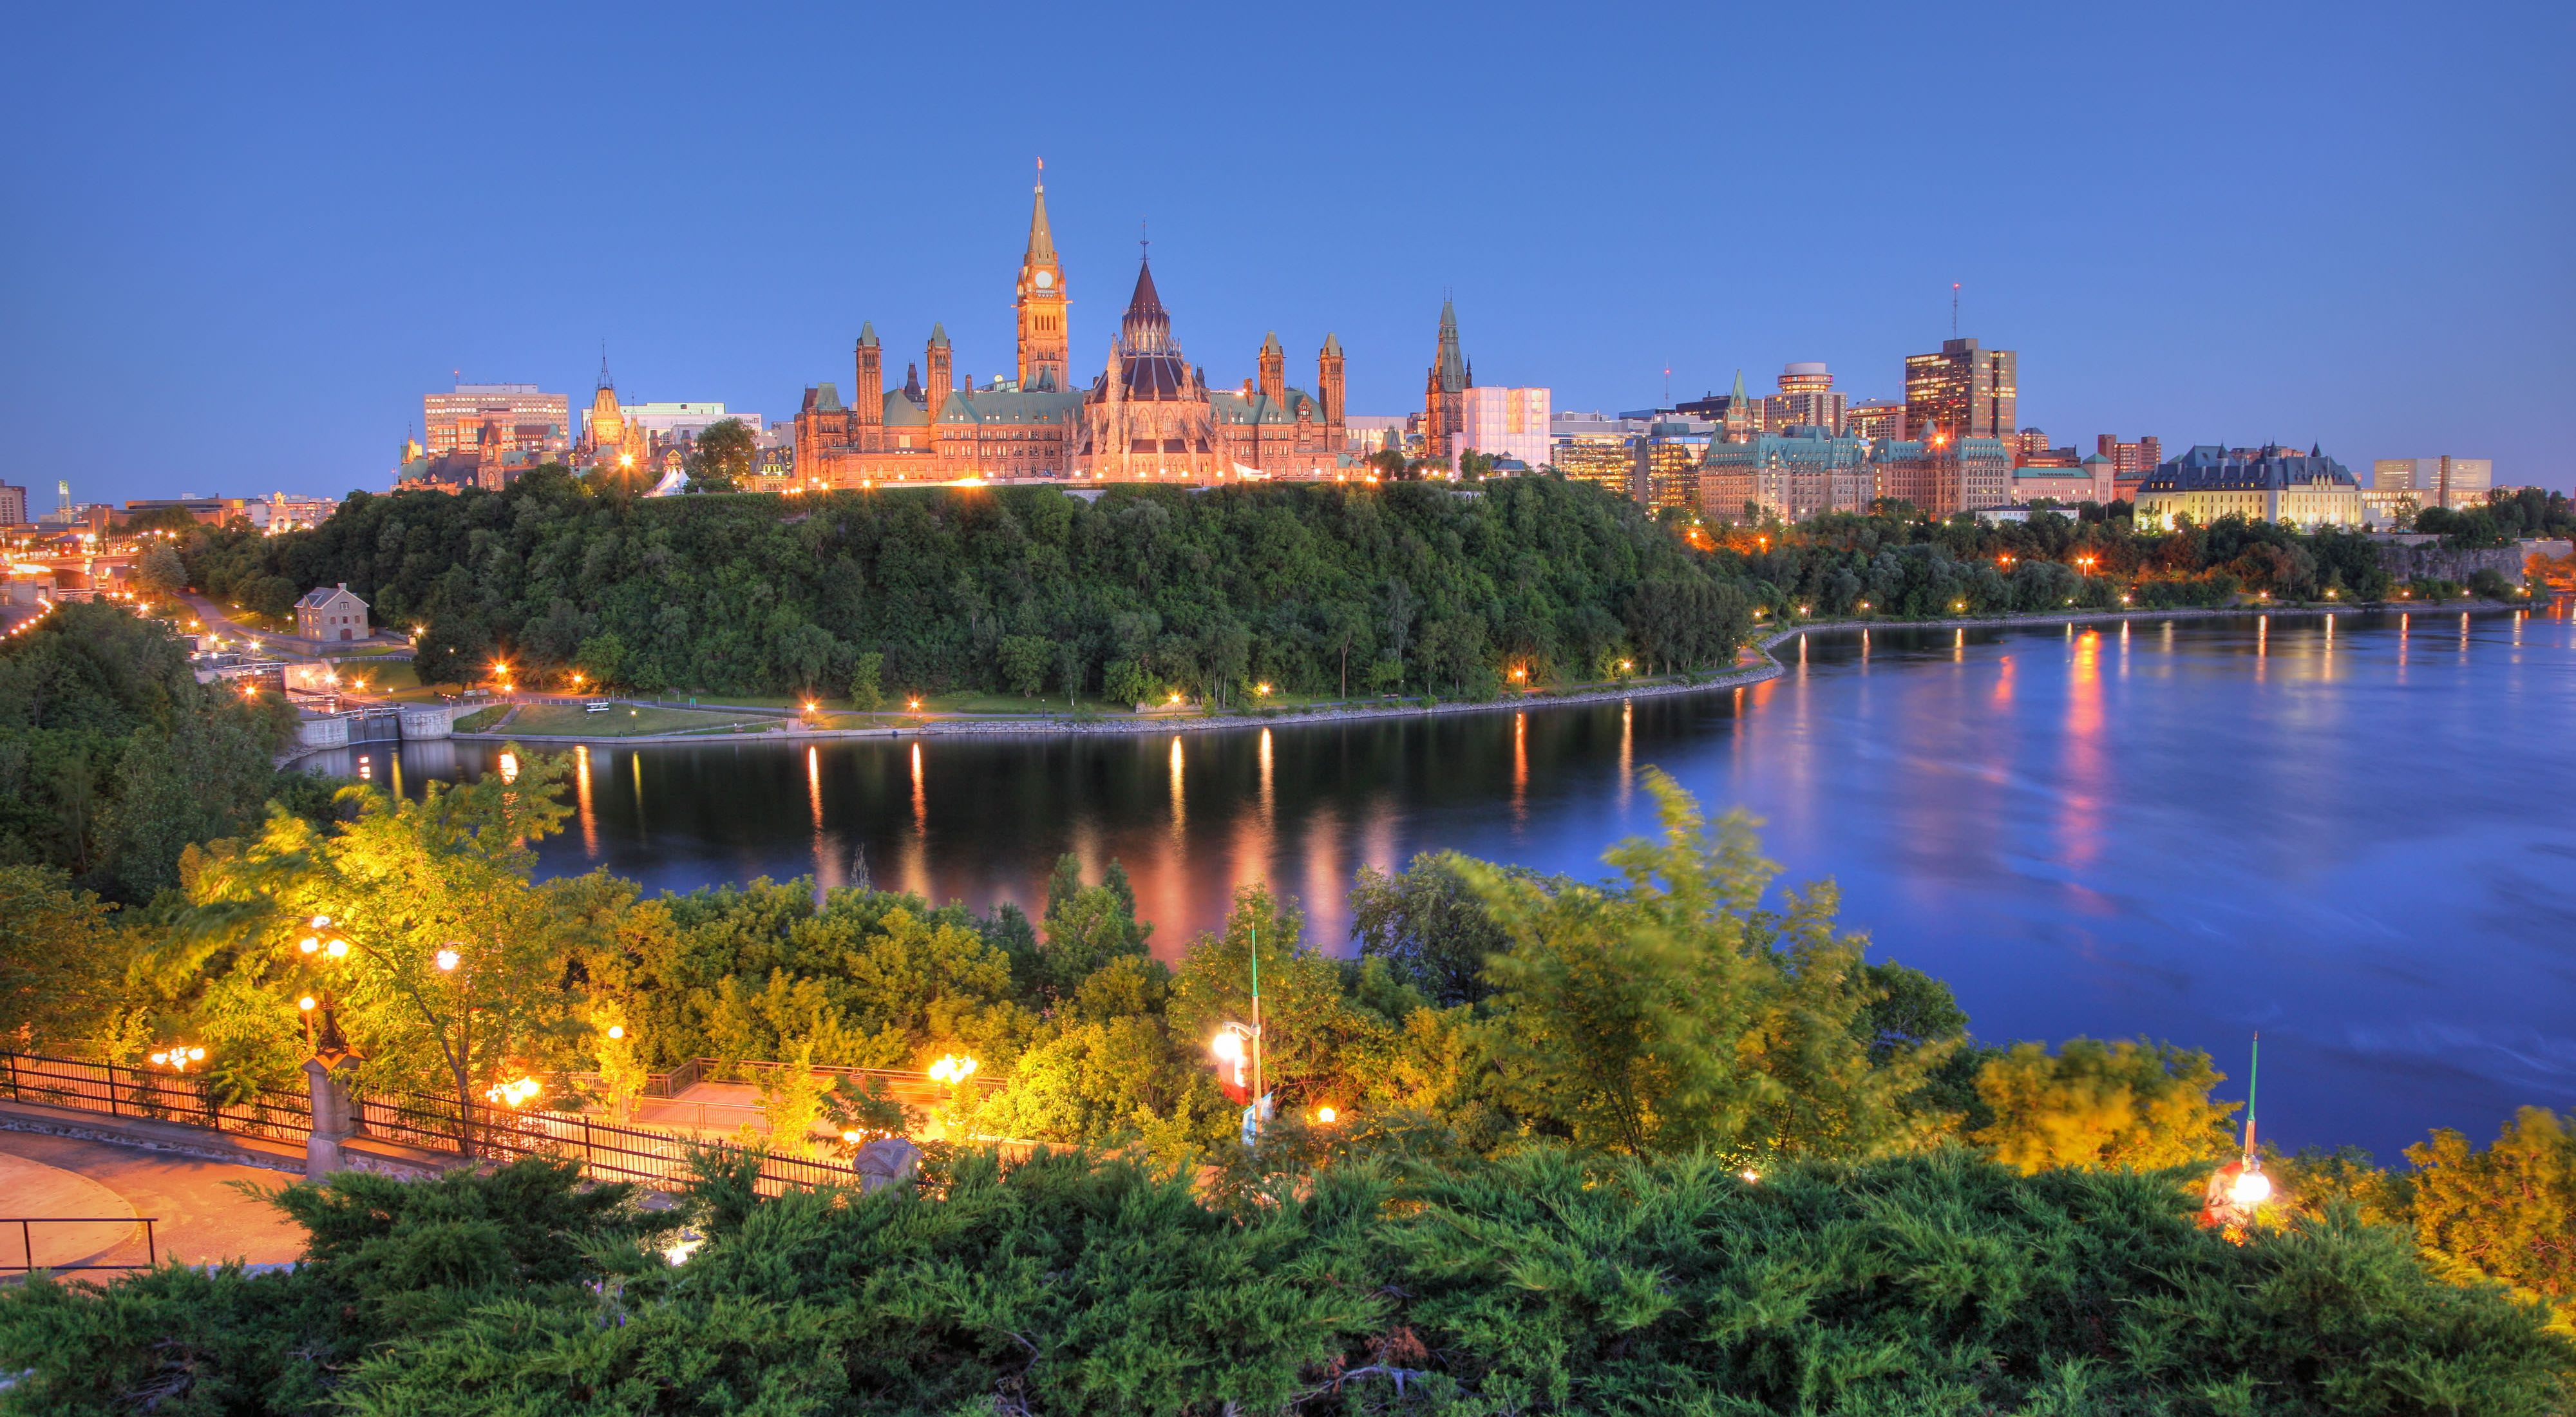 Canada's capital building lit up at night and surrounded by trees in Ottawa, Ontario.